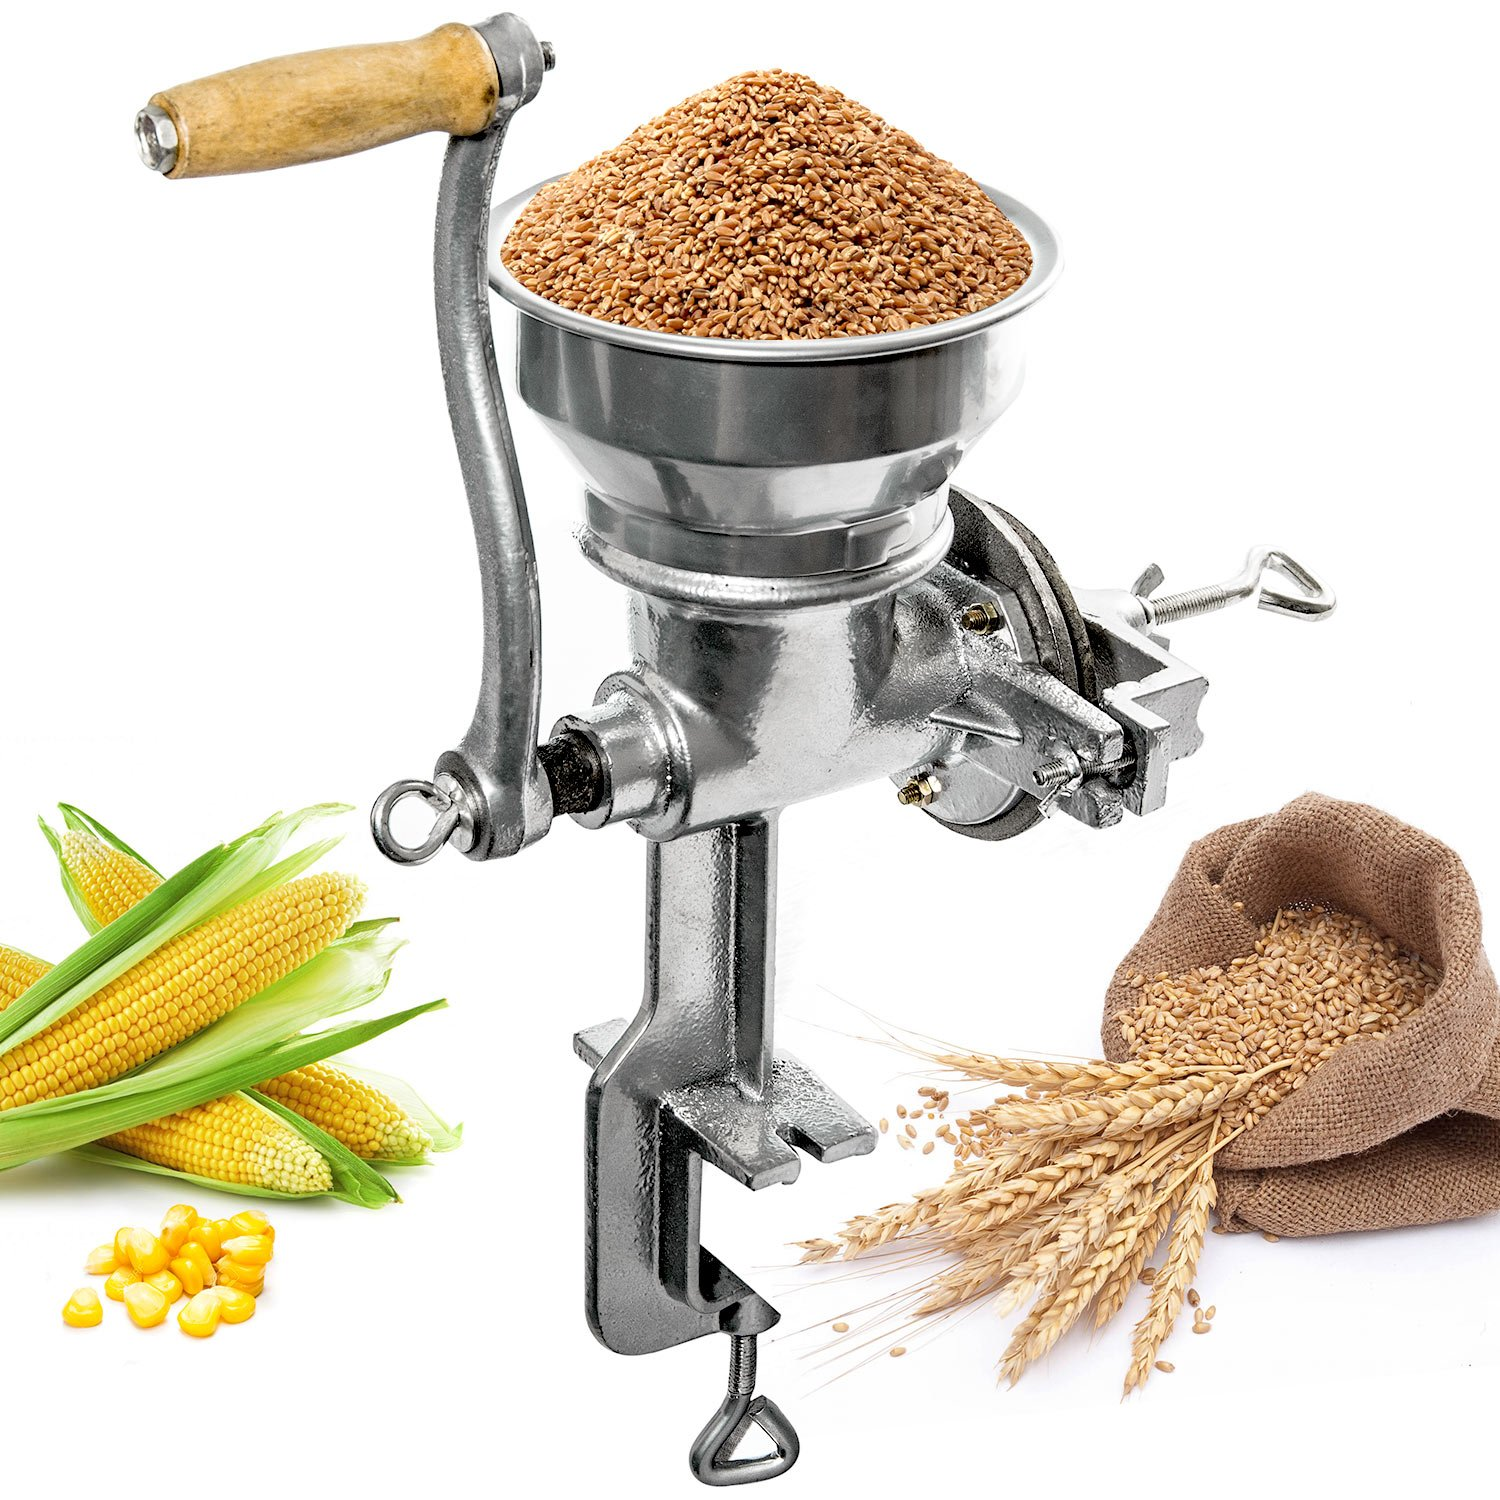 Professional Manual Grain Grinder - Table Clamp Corn Mill with Hopper, Cast Iron by Biltek